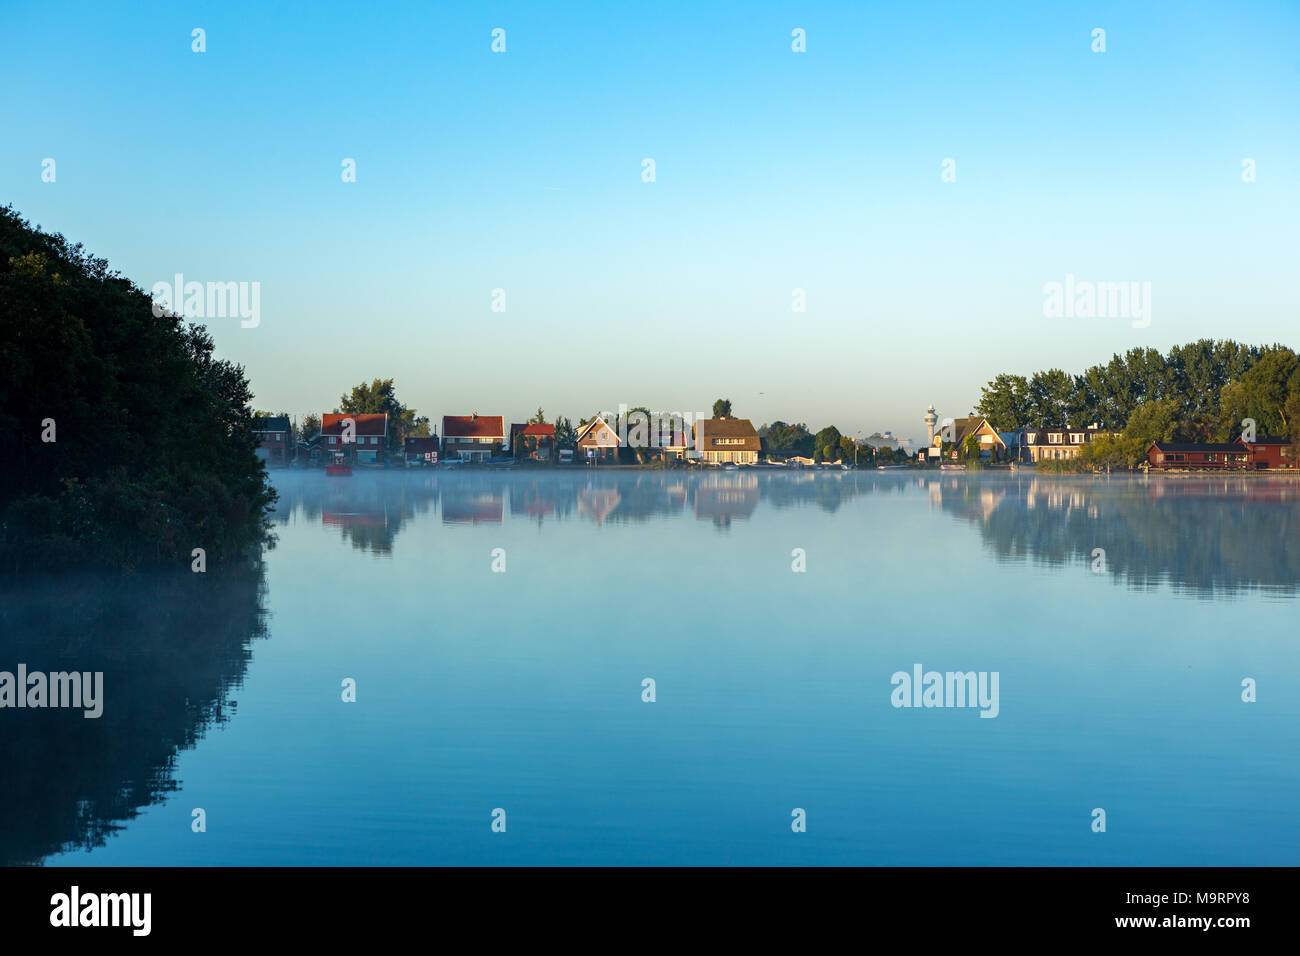 Airtrafic tower and houses on a windless and foggy morning at lake 'Nieuwe Meer' in Amsterdam the Netherlands. - Stock Image